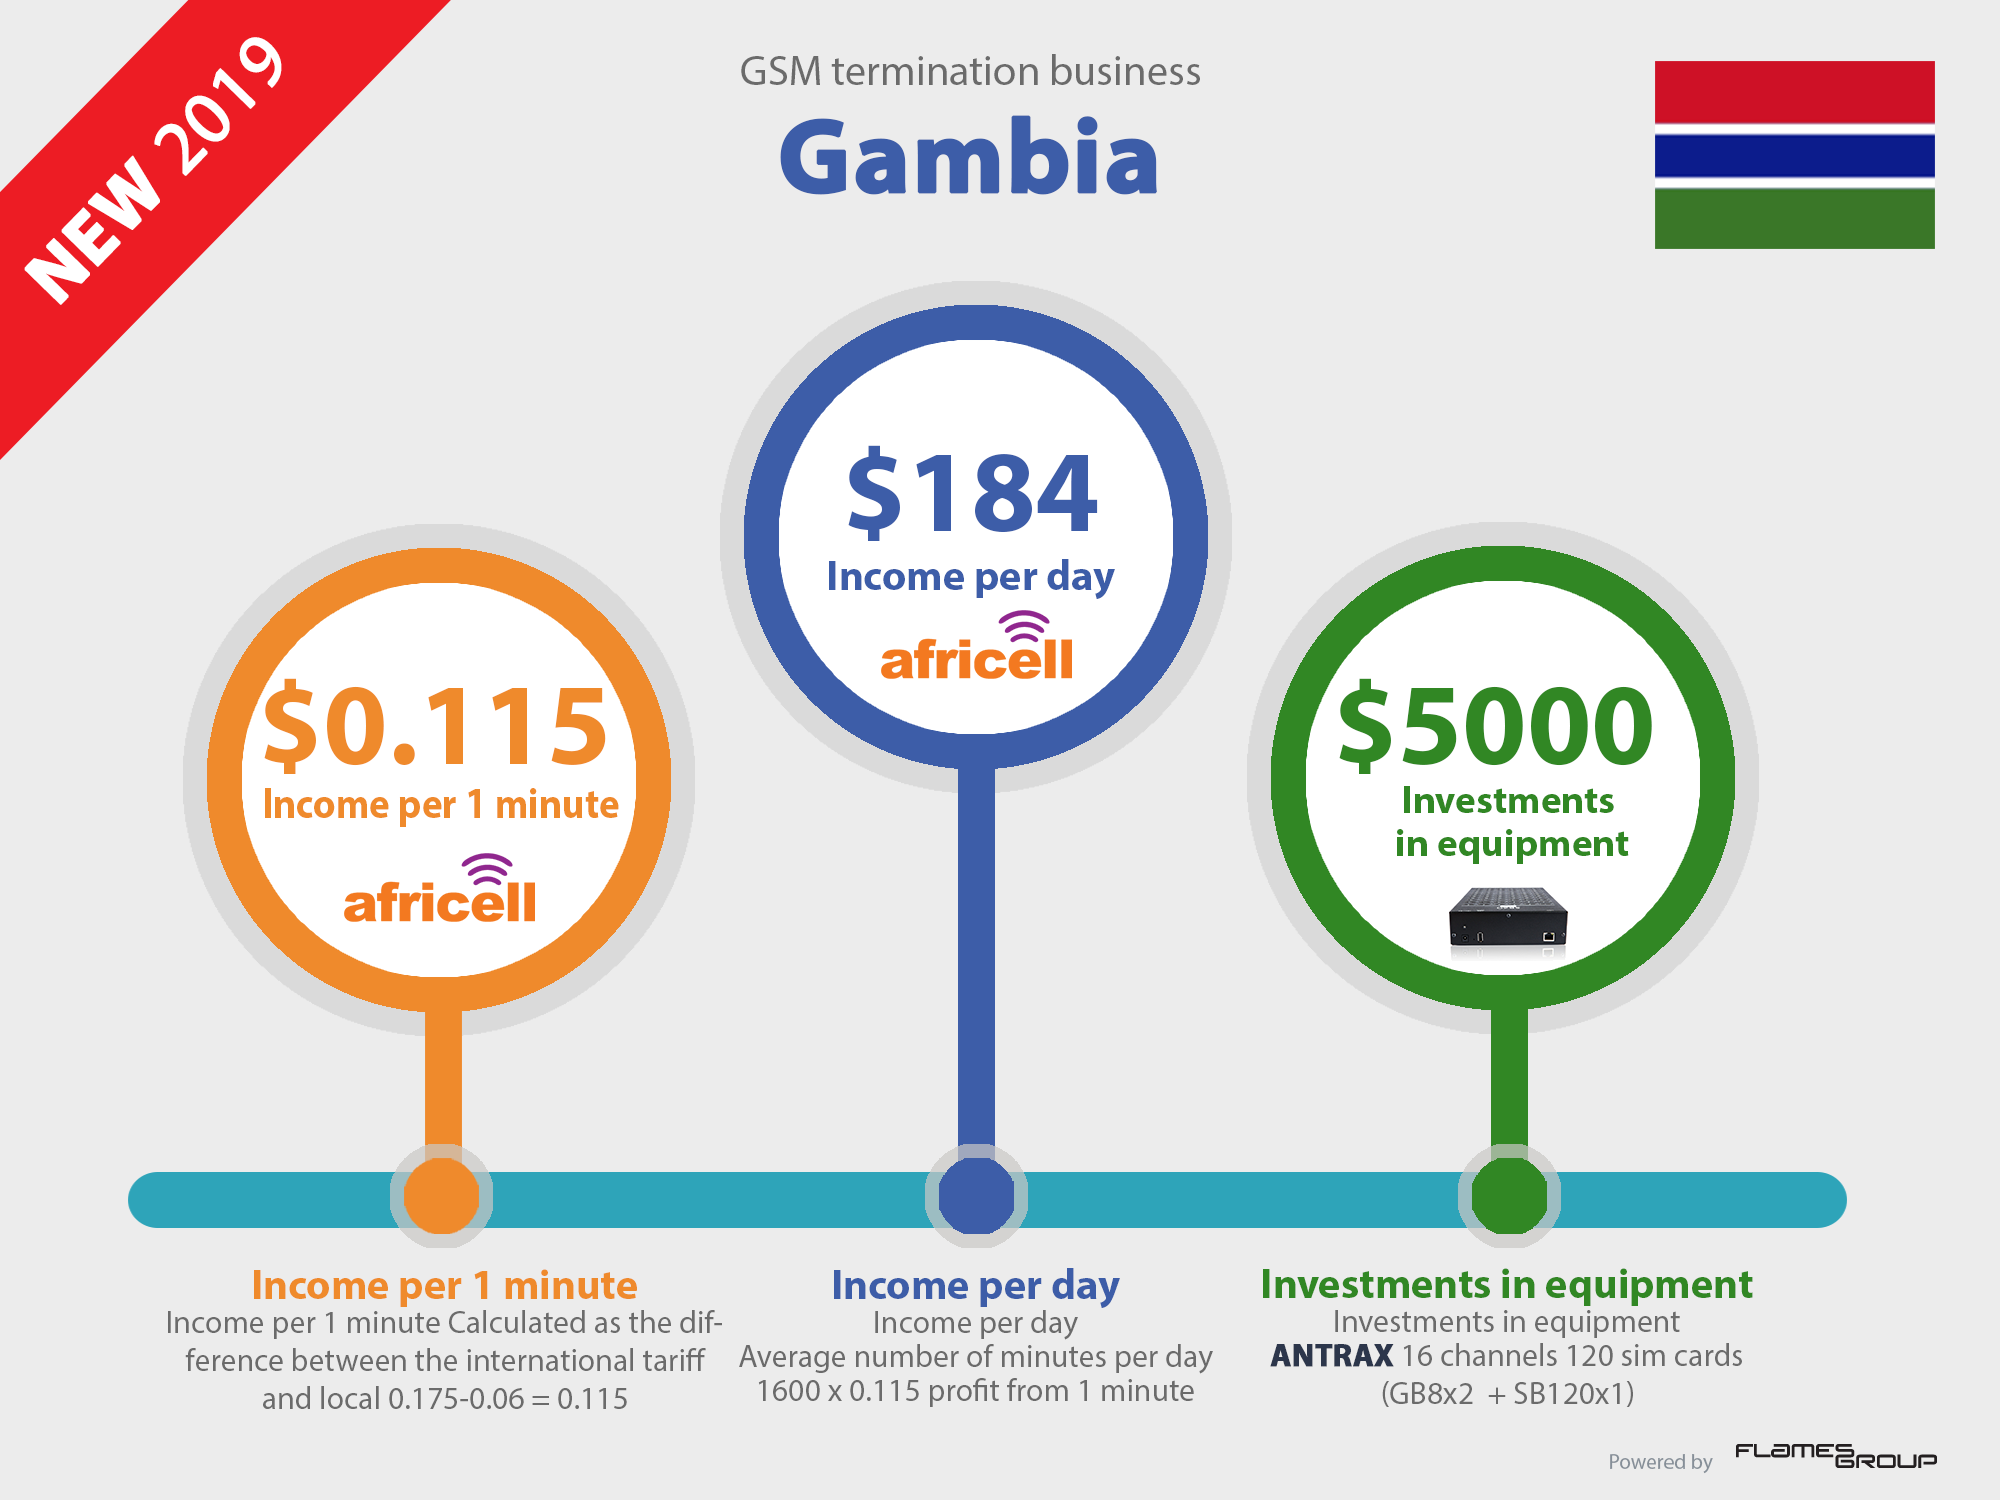 Call VoIP GSM termination business profit in Gambia Infographic ANTRAX 2019